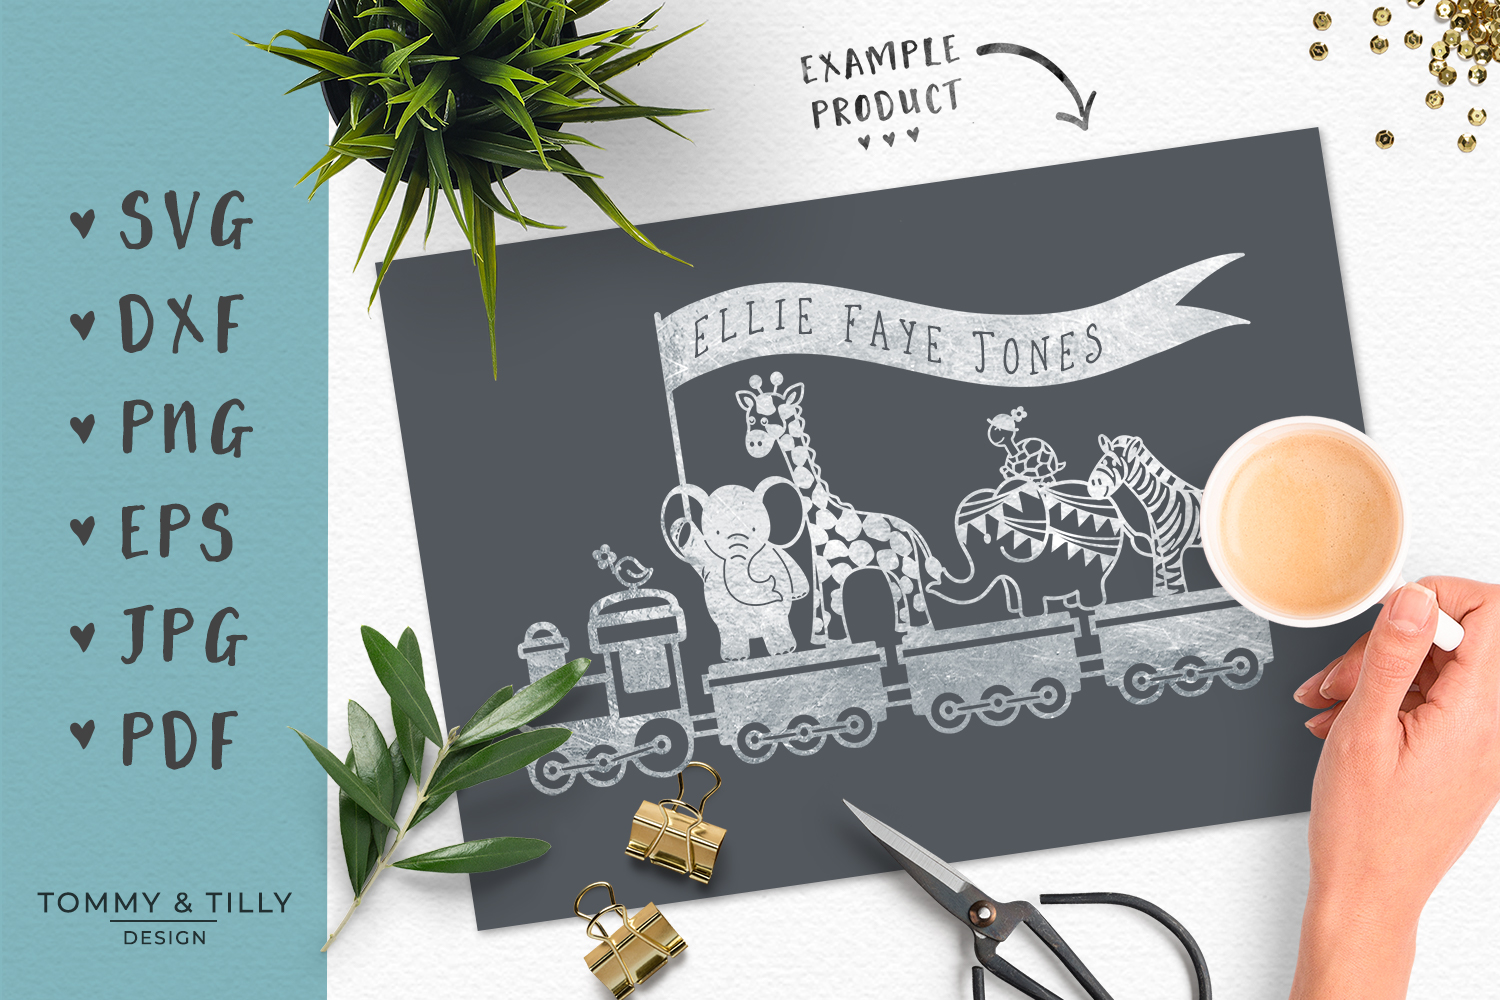 Animal Train - SVG DXF PNG EPS JPG PDF Cutting File example image 6